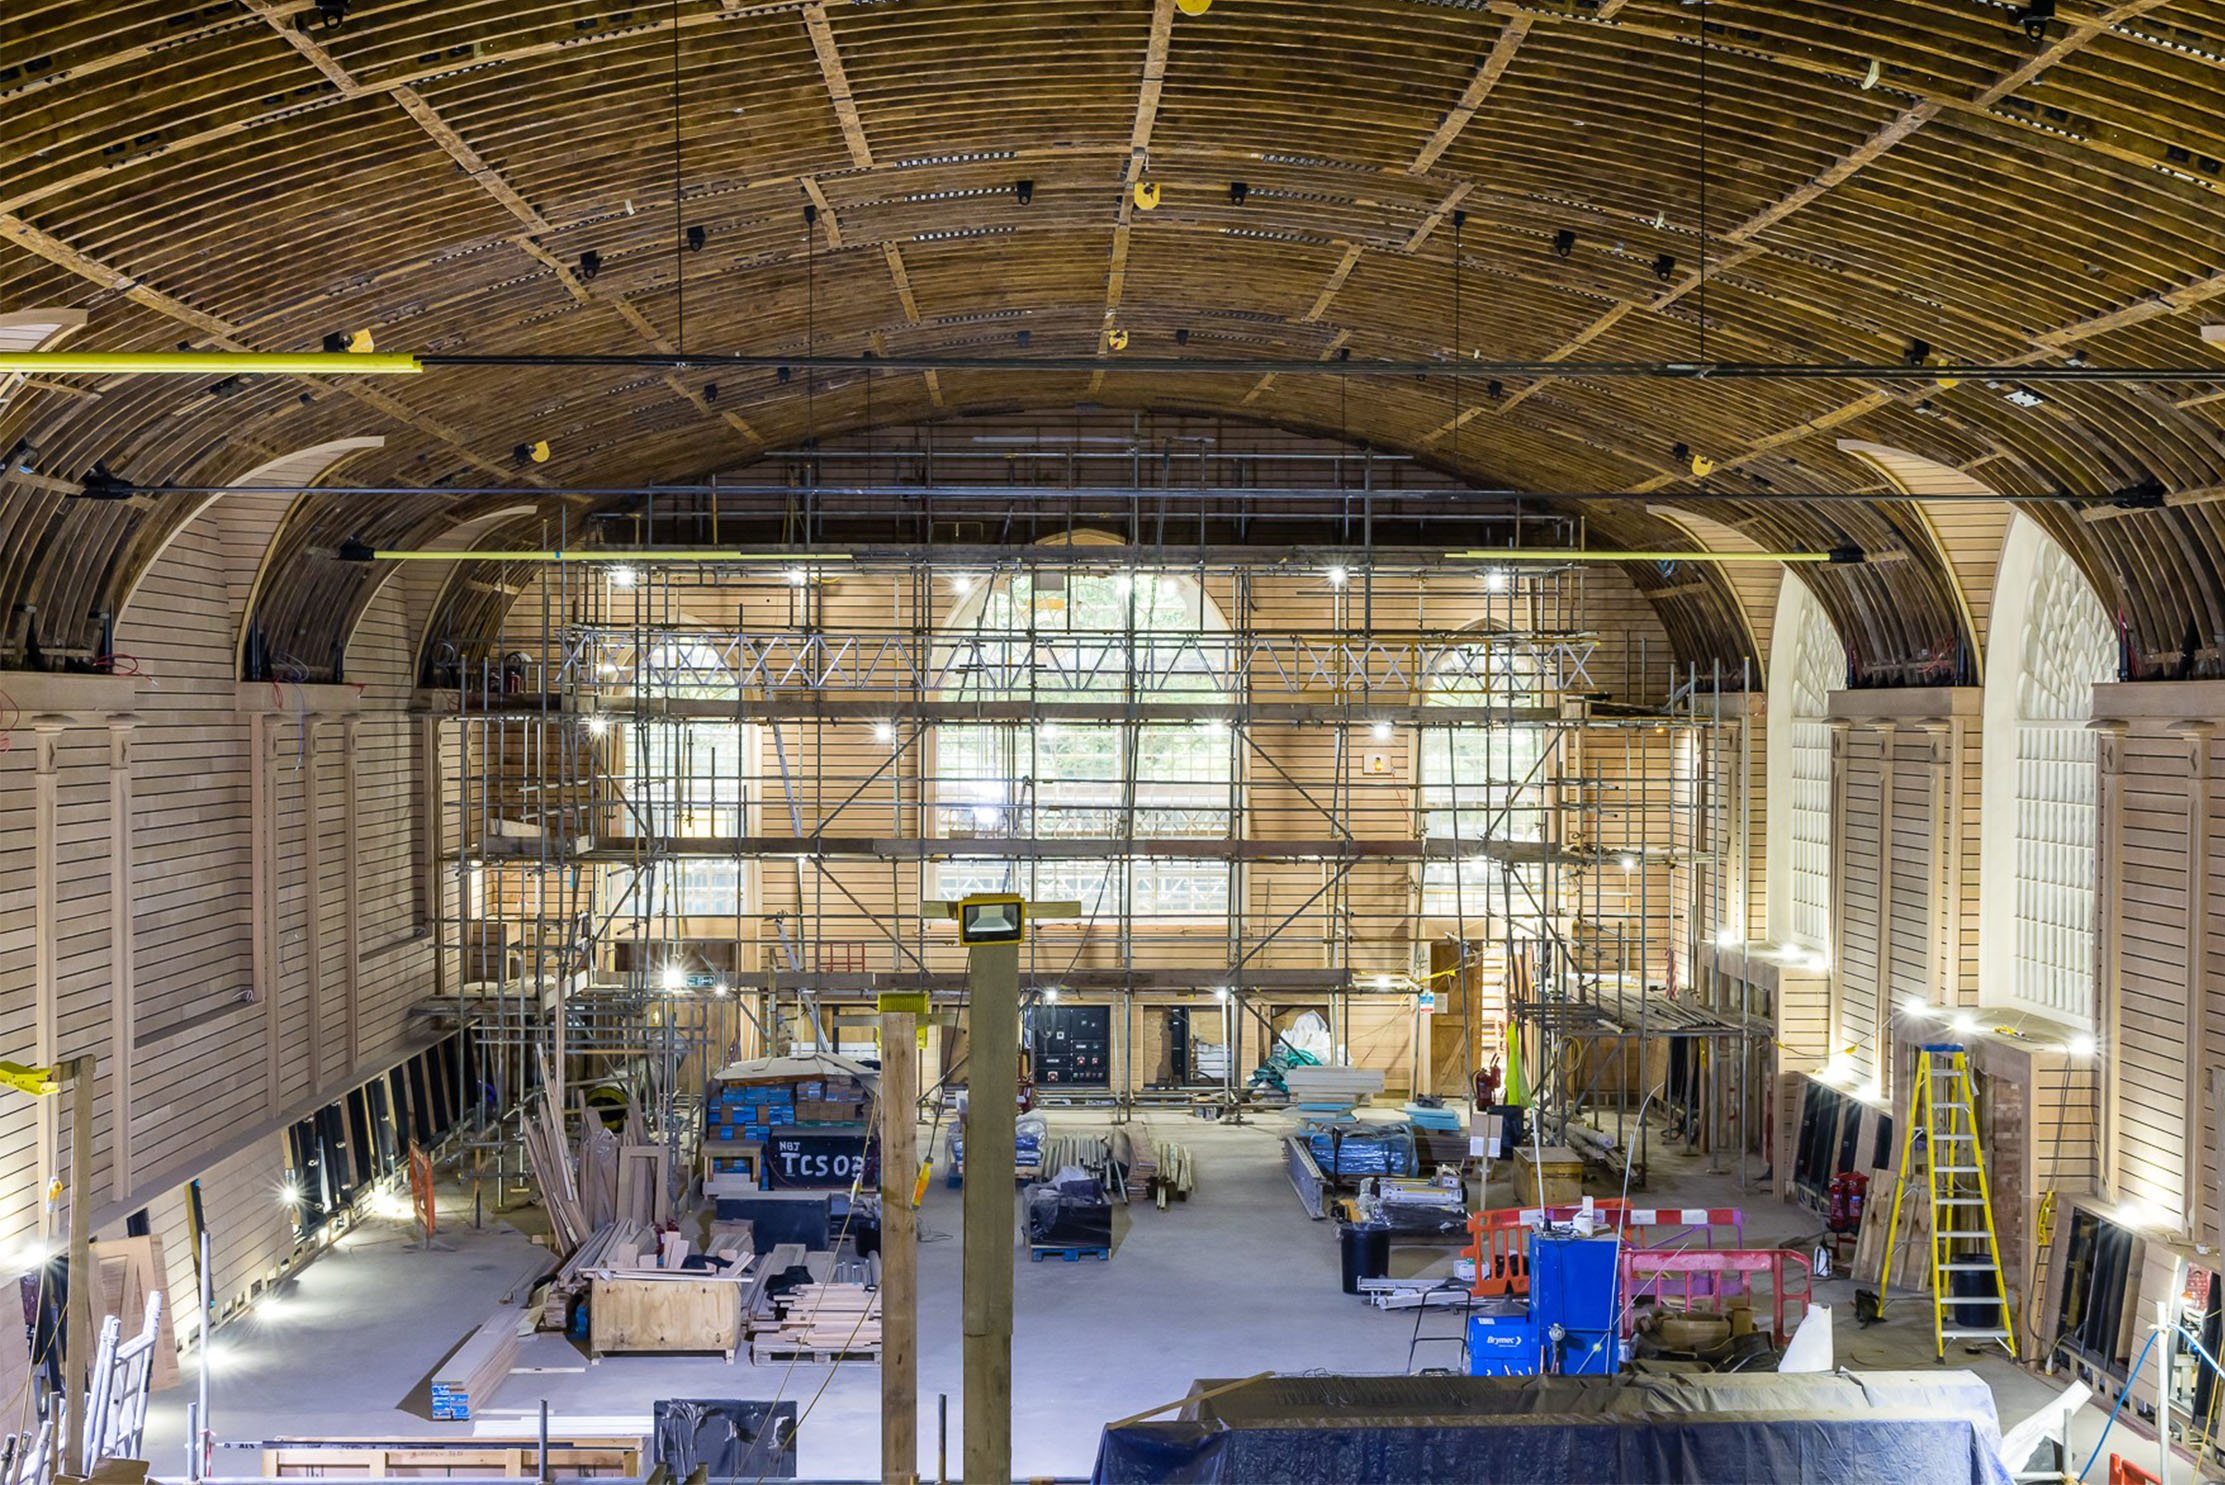 The refurbishment of Brighton Dome's iconic Corn Exchange has completed extensive repairs to keep this 200-year-old Grade I listed building safe, and preserved.